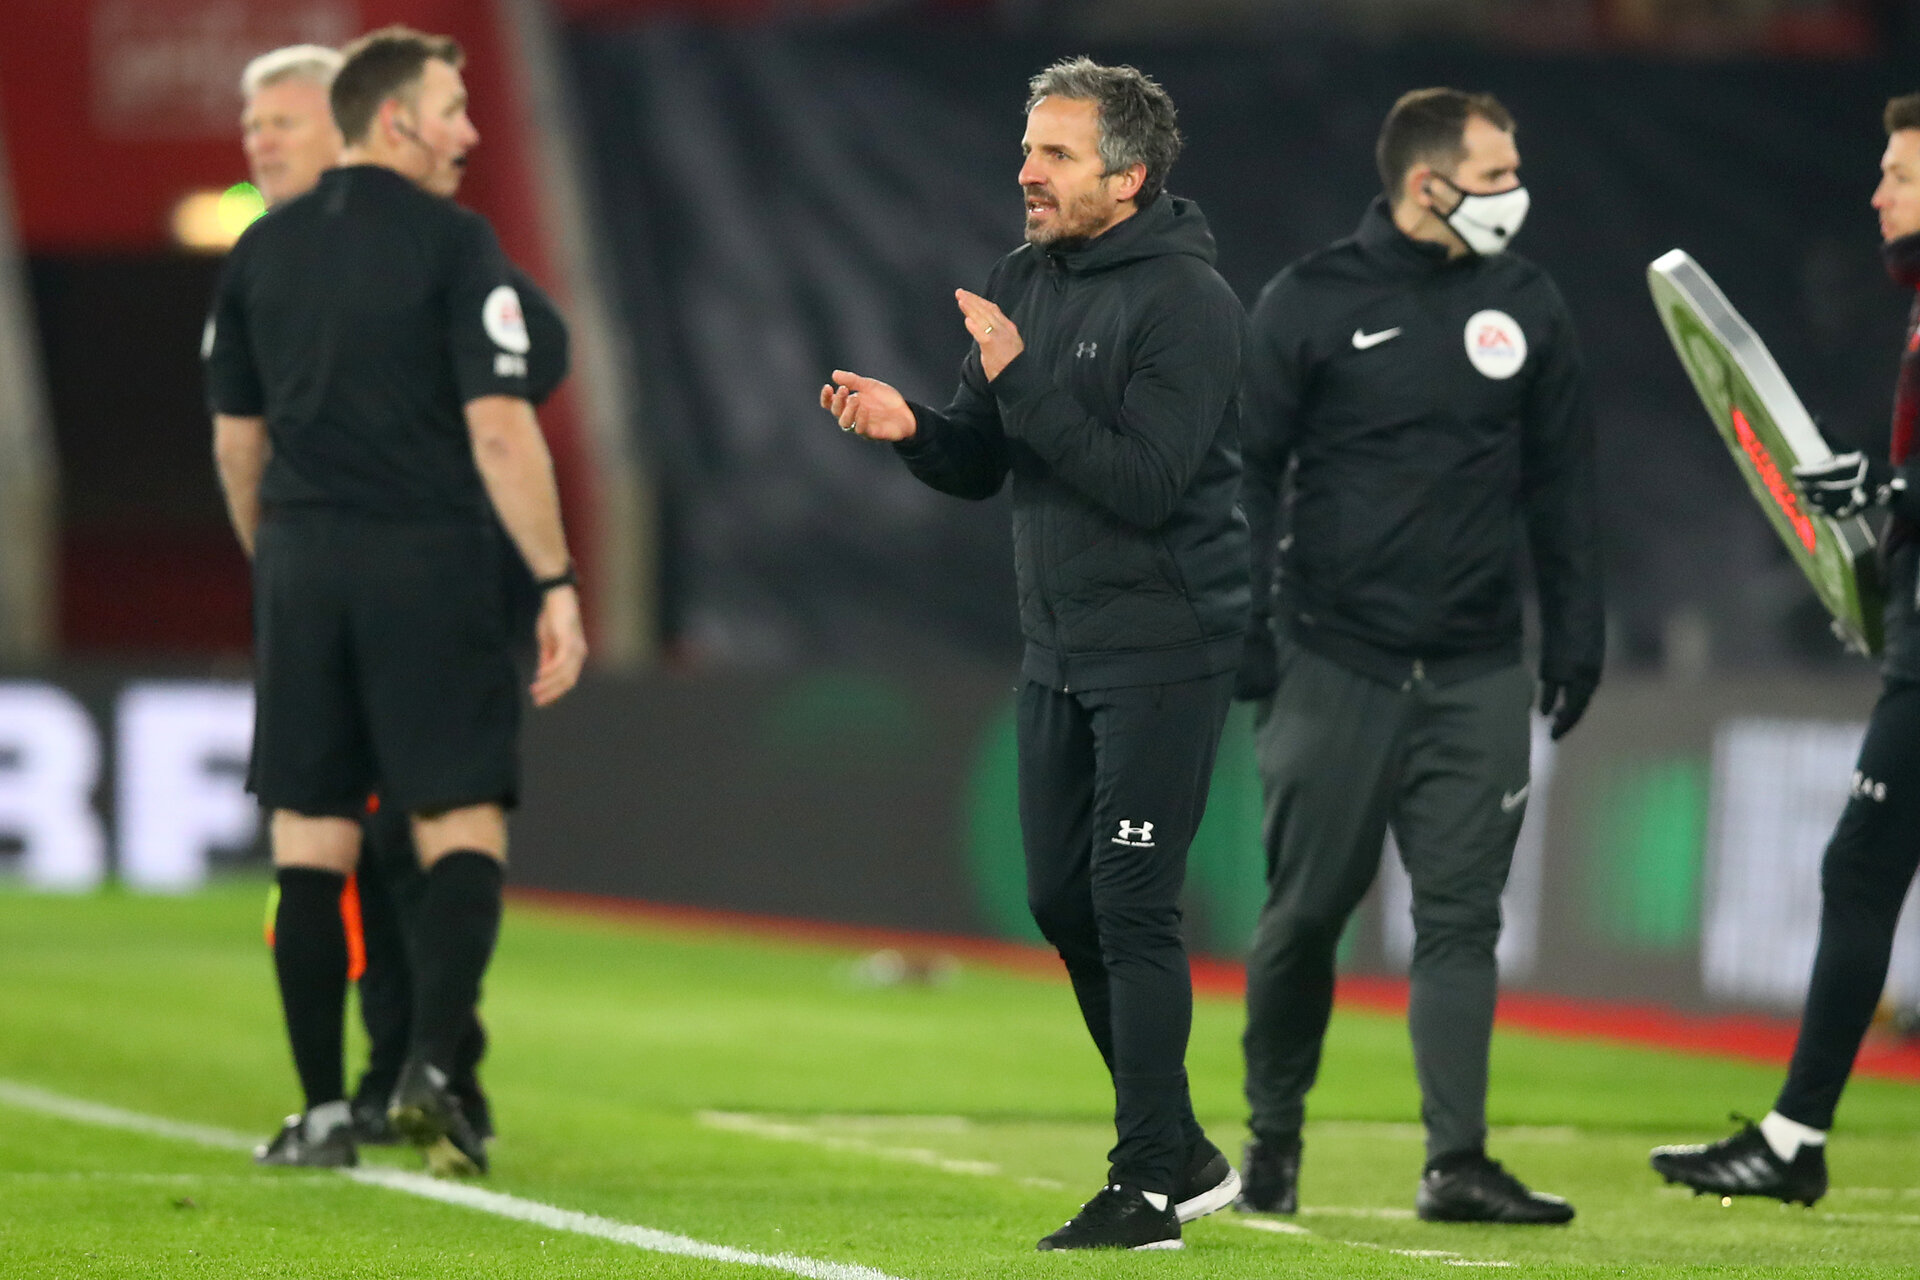 SOUTHAMPTON, ENGLAND - DECEMBER 29: Richard Kitzichler of Southampton first team assistant coach during the Premier League match between Southampton and West Ham United at St Mary's Stadium on December 29, 2020 in Southampton, England. The match will be played without fans, behind closed doors as a Covid-19 precaution. (Photo by Matt Watson/Southampton FC via Getty Images)